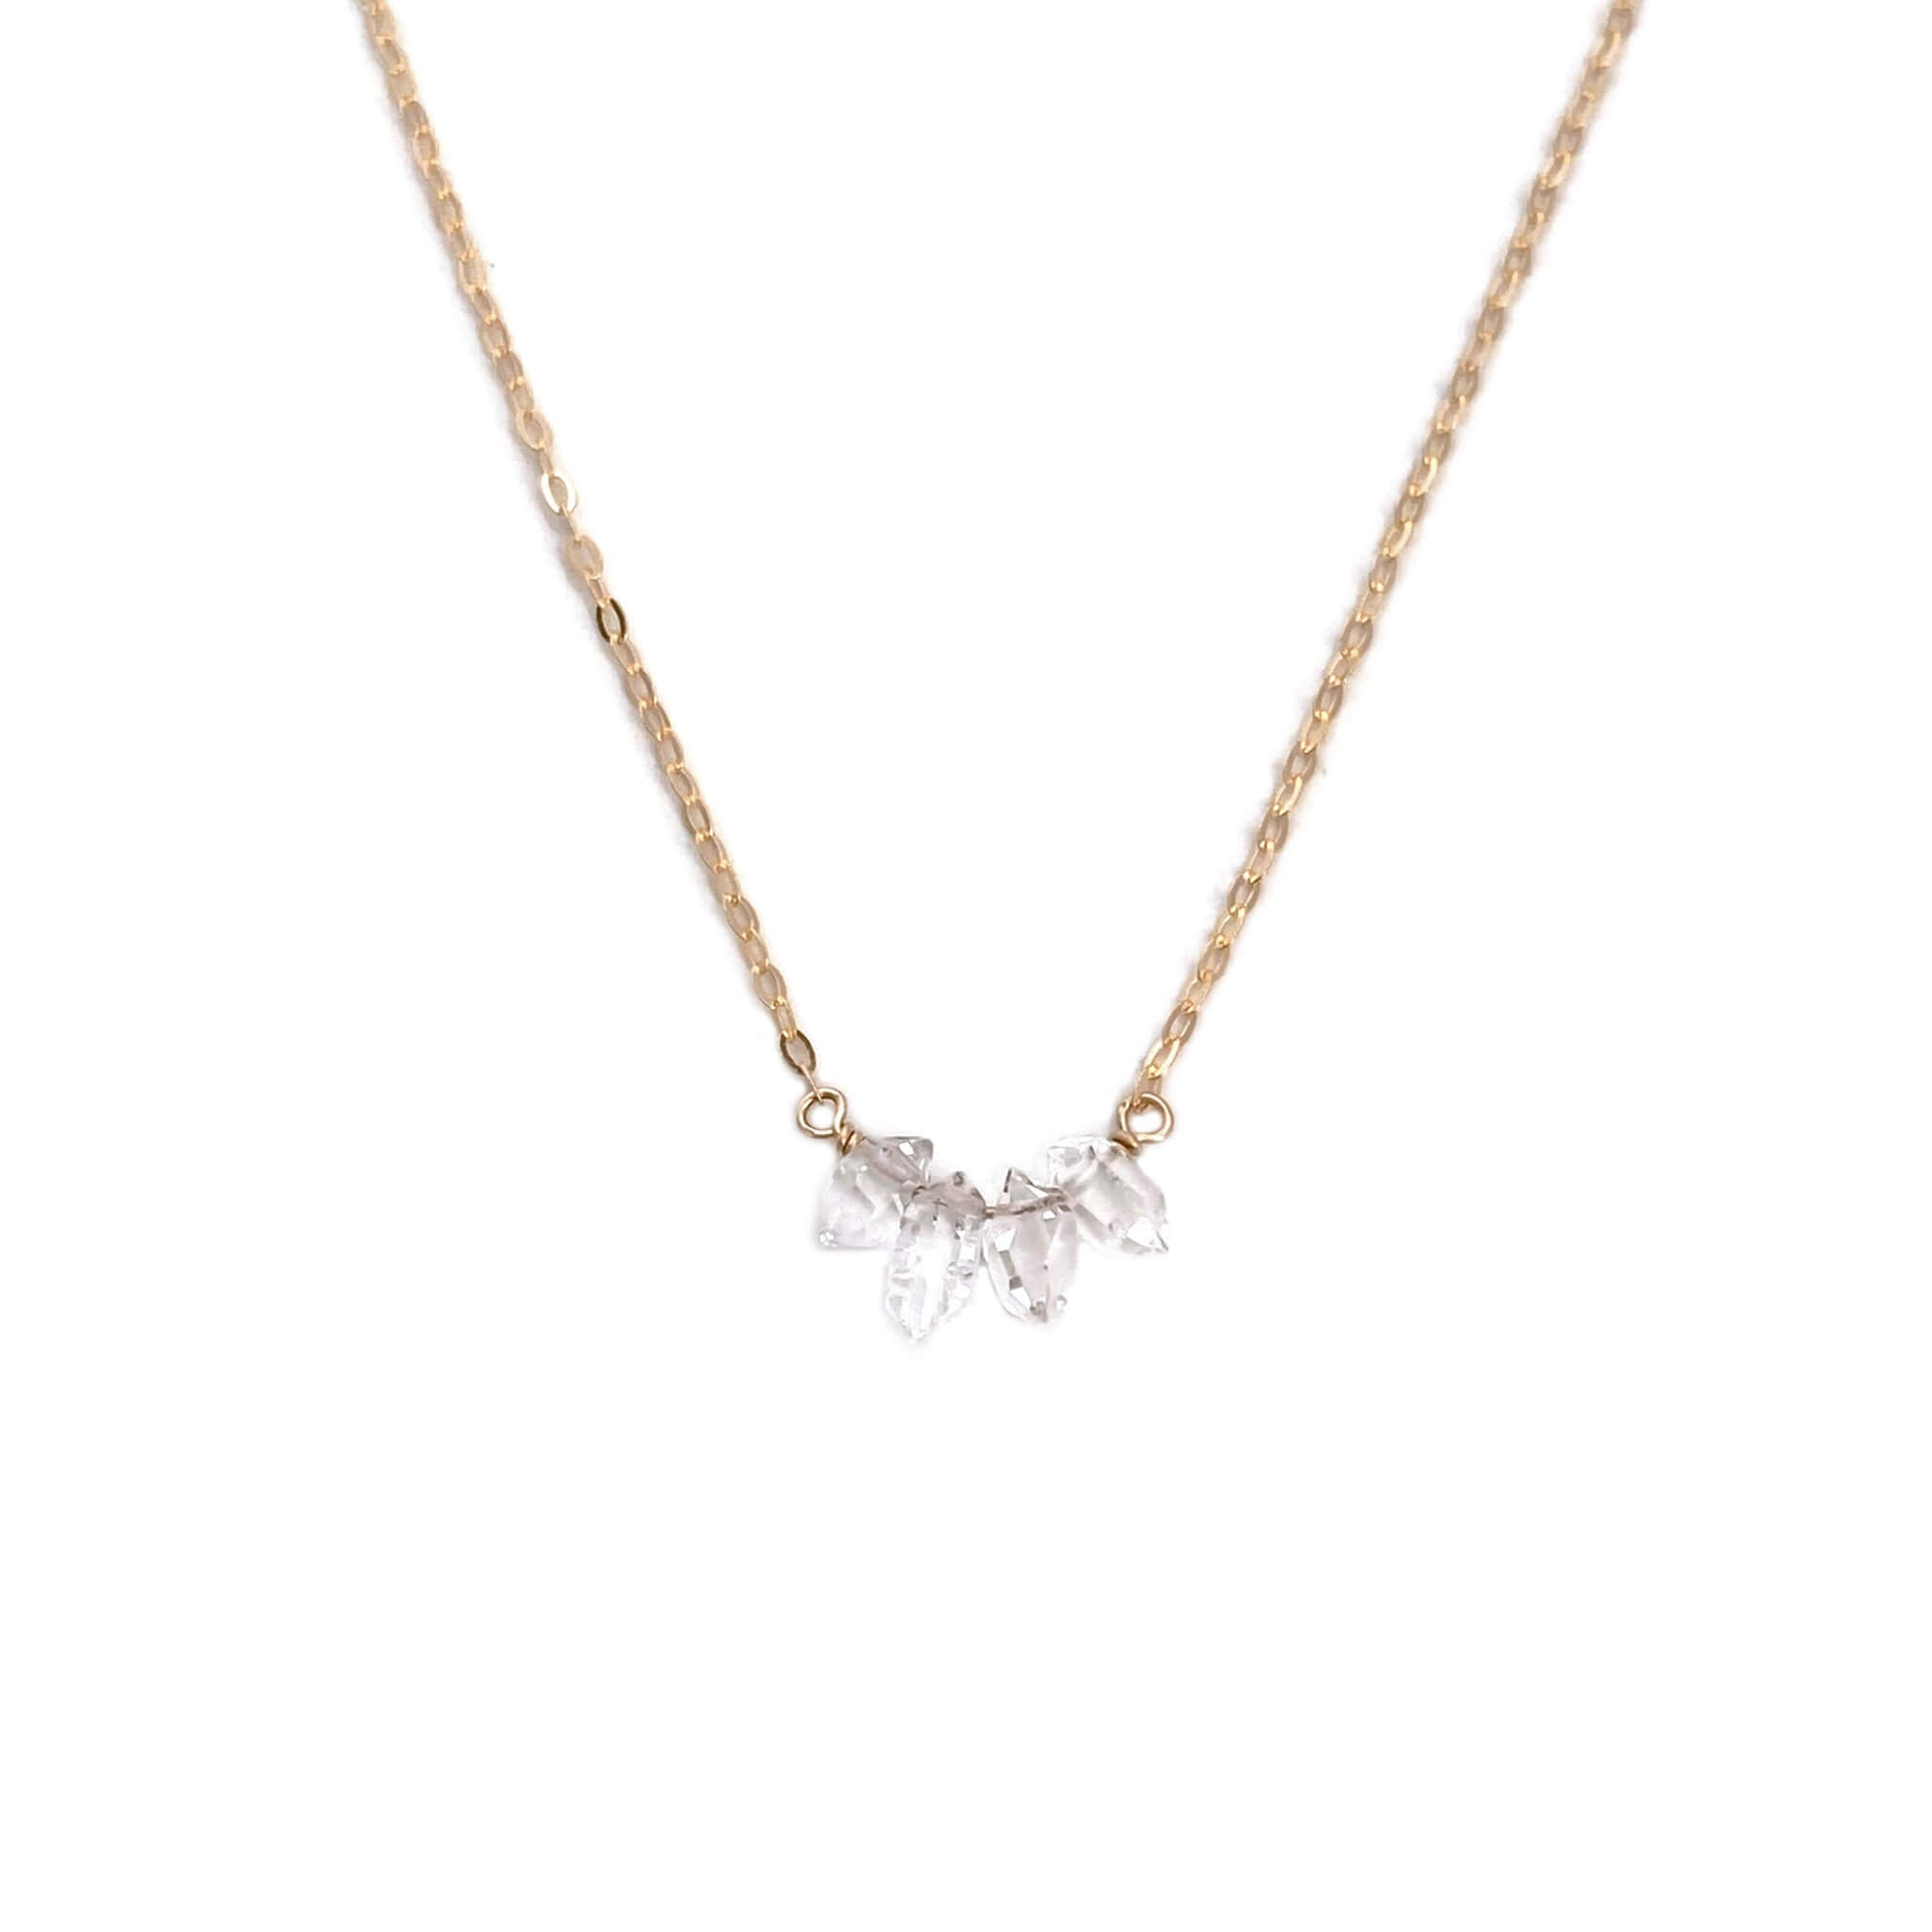 this delicate gold necklace is made of Herkimer diamond and dainty gold filled chain with extender.